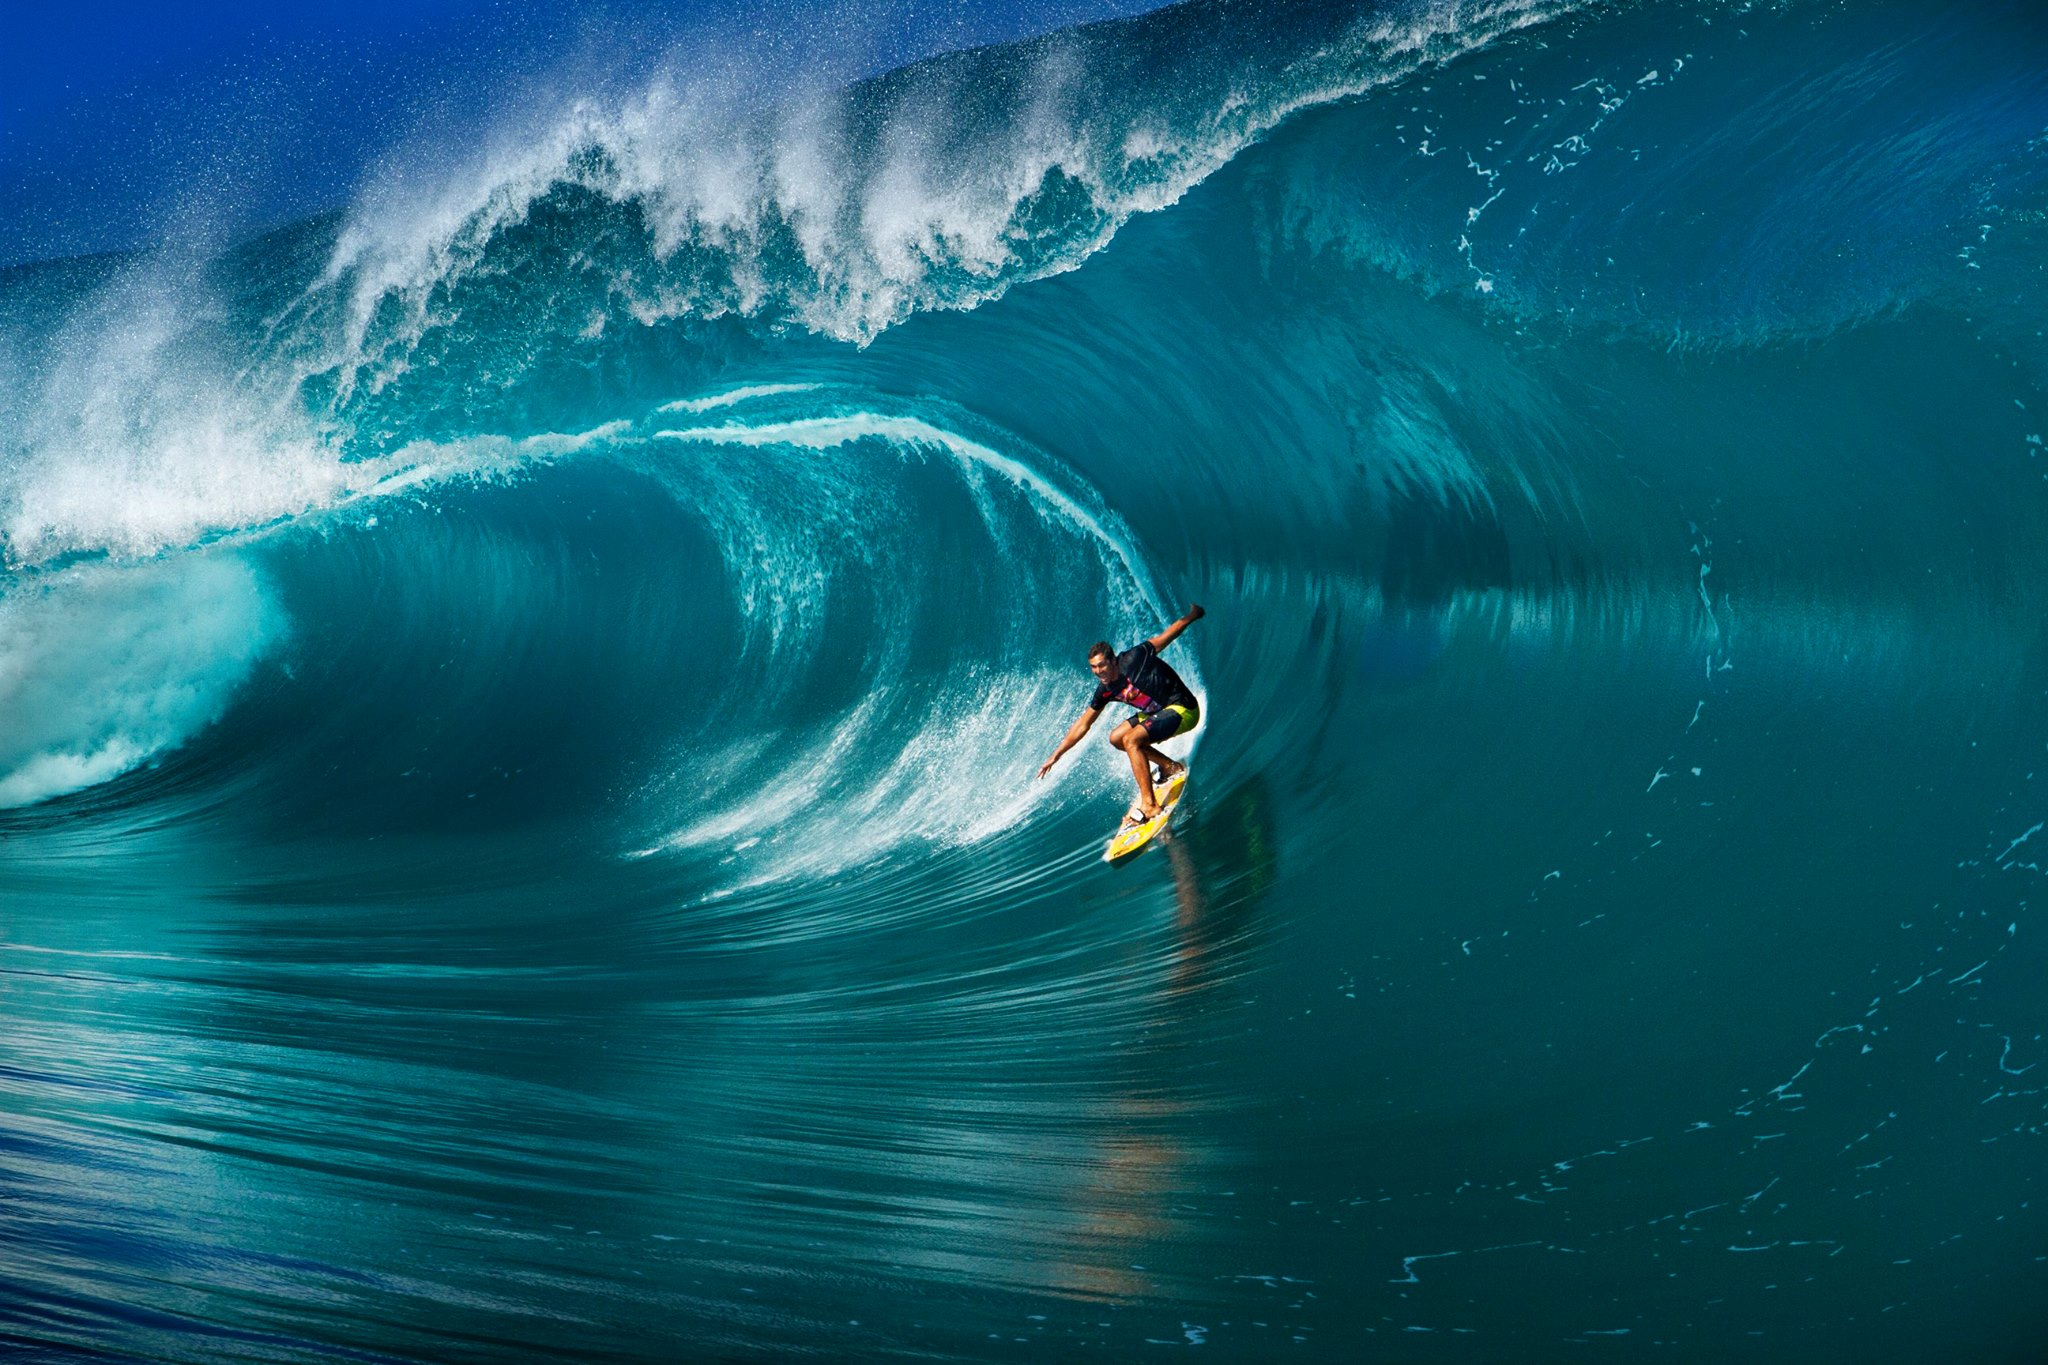 Tikanui Smith à Teahupo'o © John DeTemple